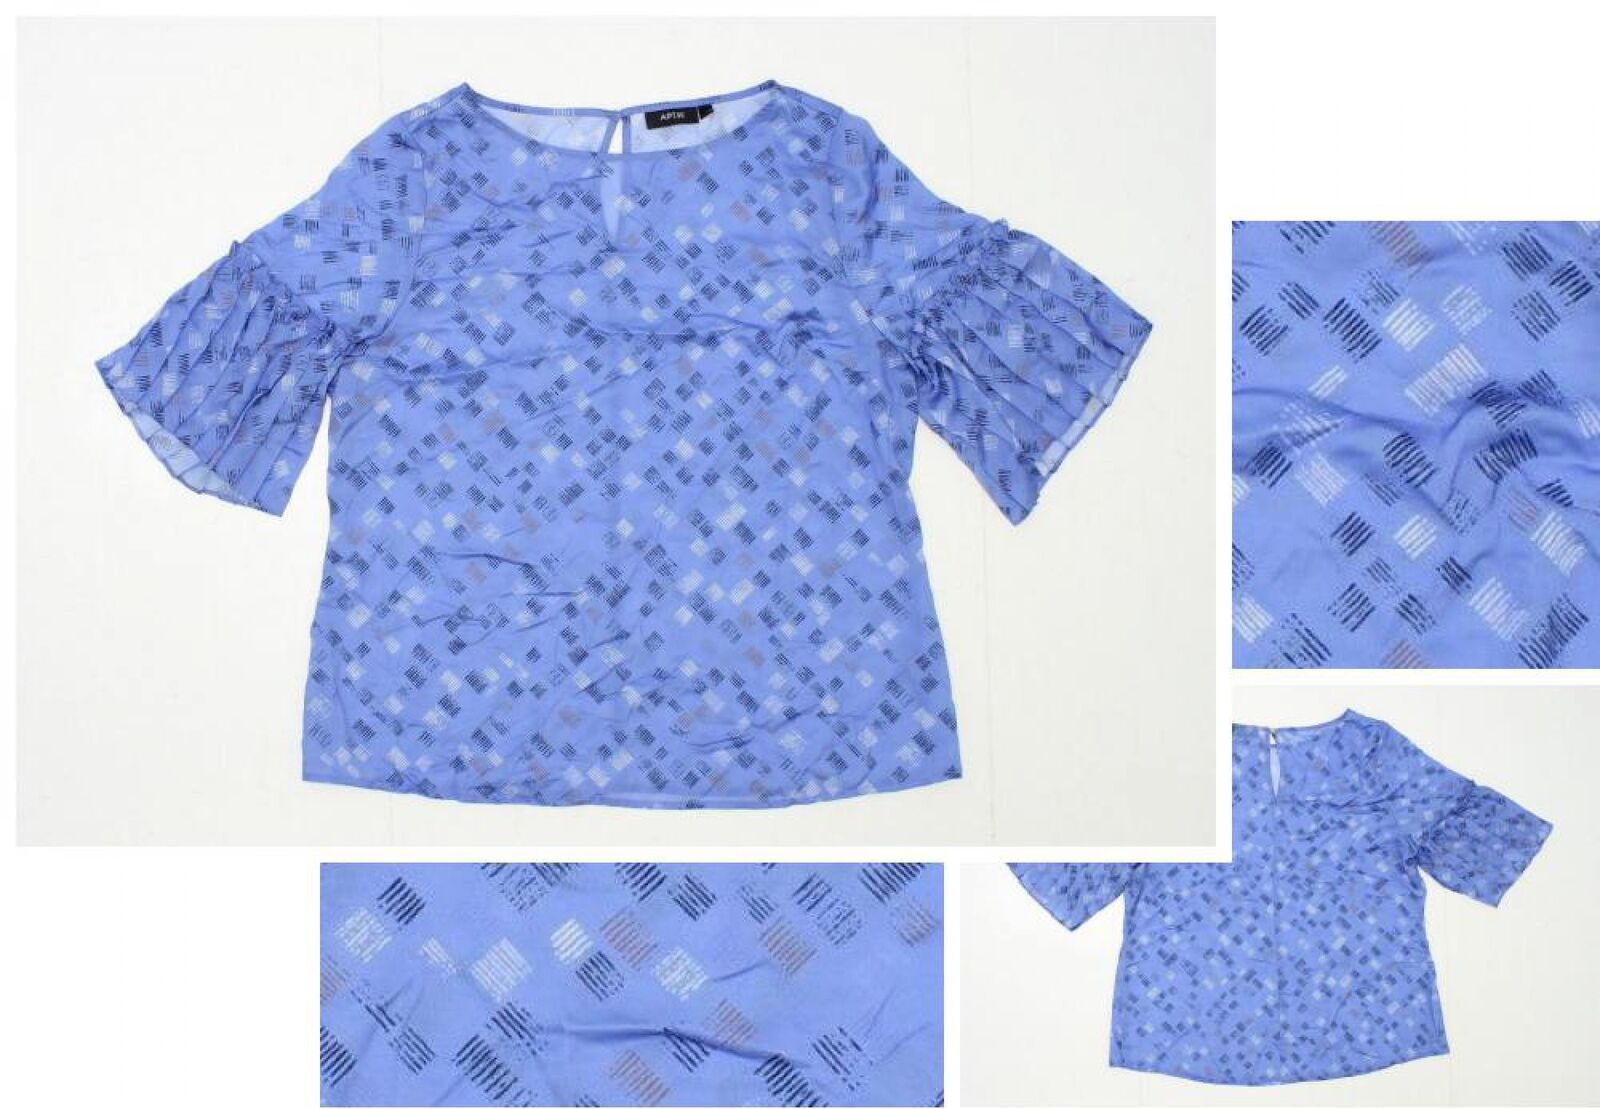 Details about nEW Sample Apartment 9 Women\'s Ruffle Sleeve Blouse Shirt  Blue Size 10 MSRP $36